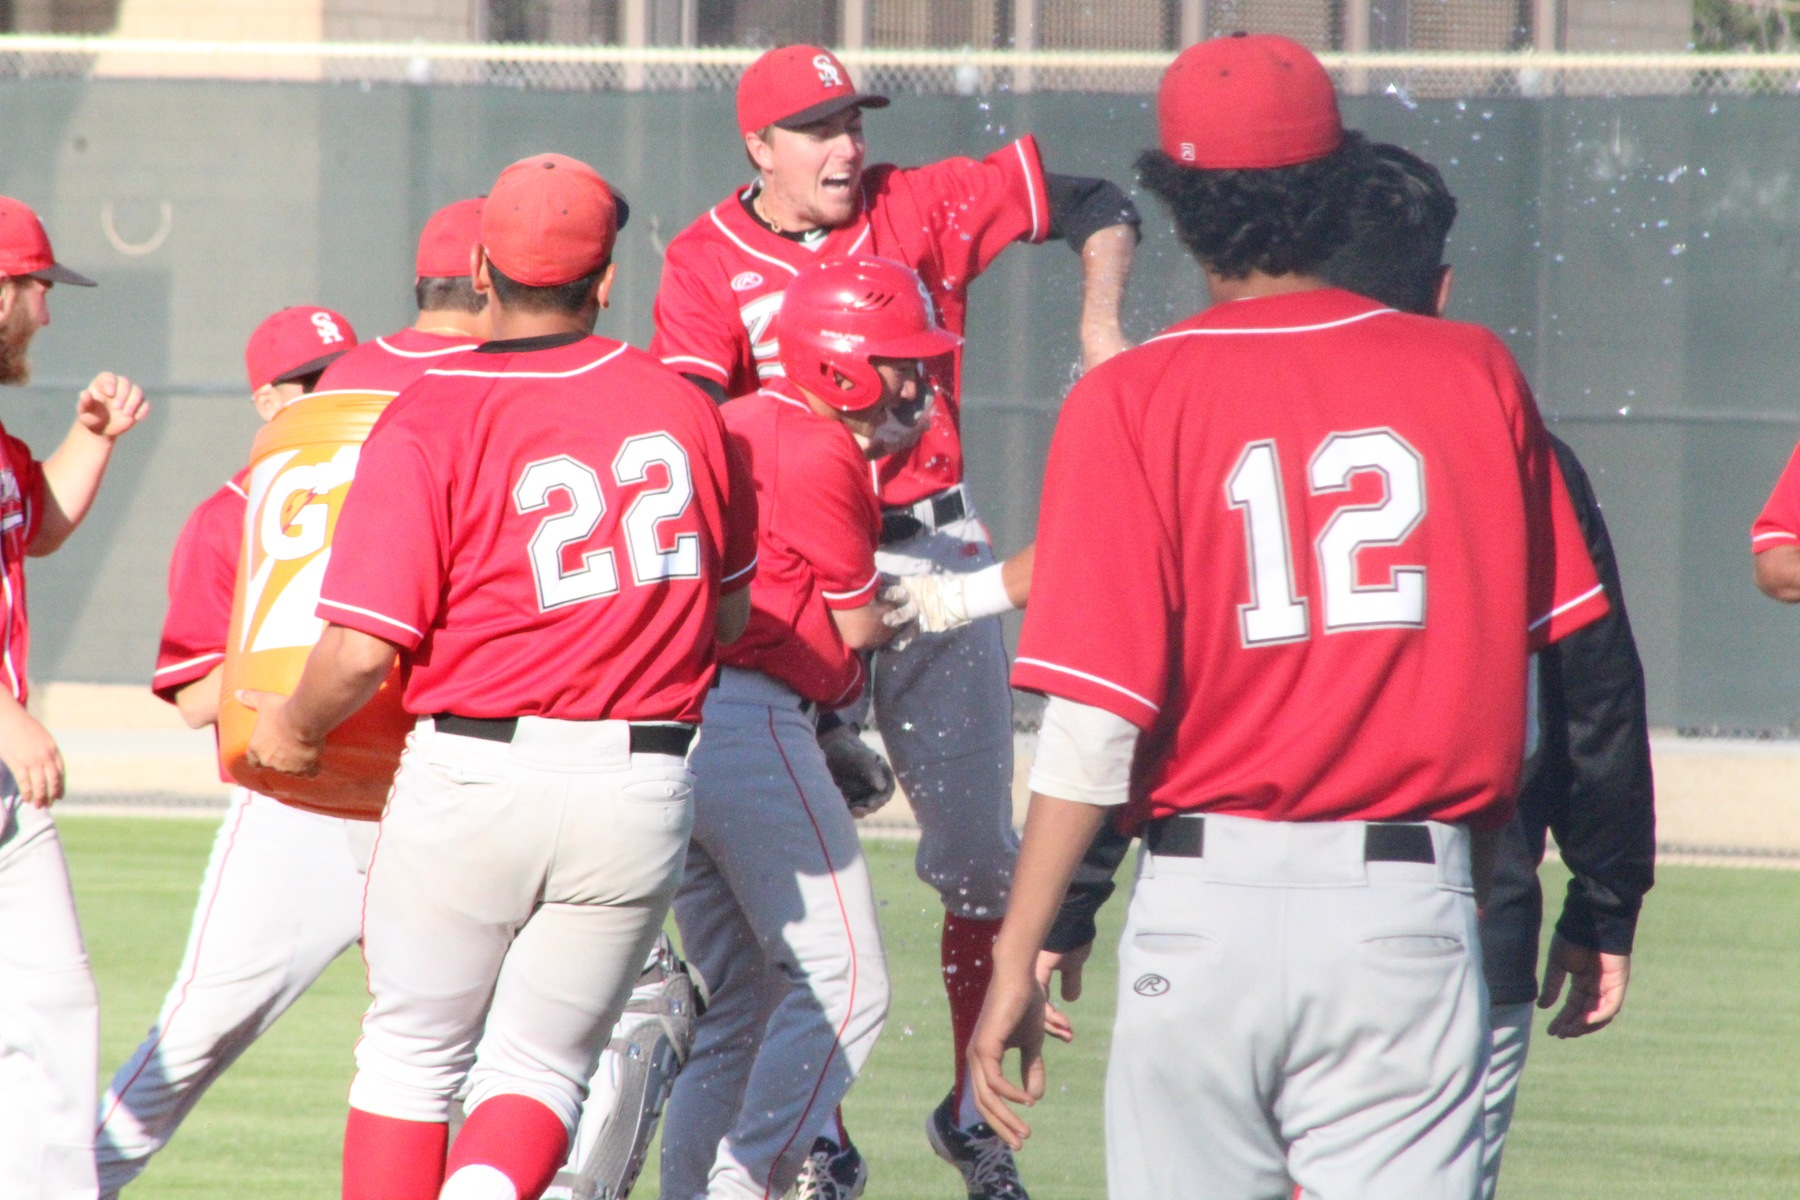 Santa Ana Defeats Fullerton 10-9 on Williams' Walk-Off Single